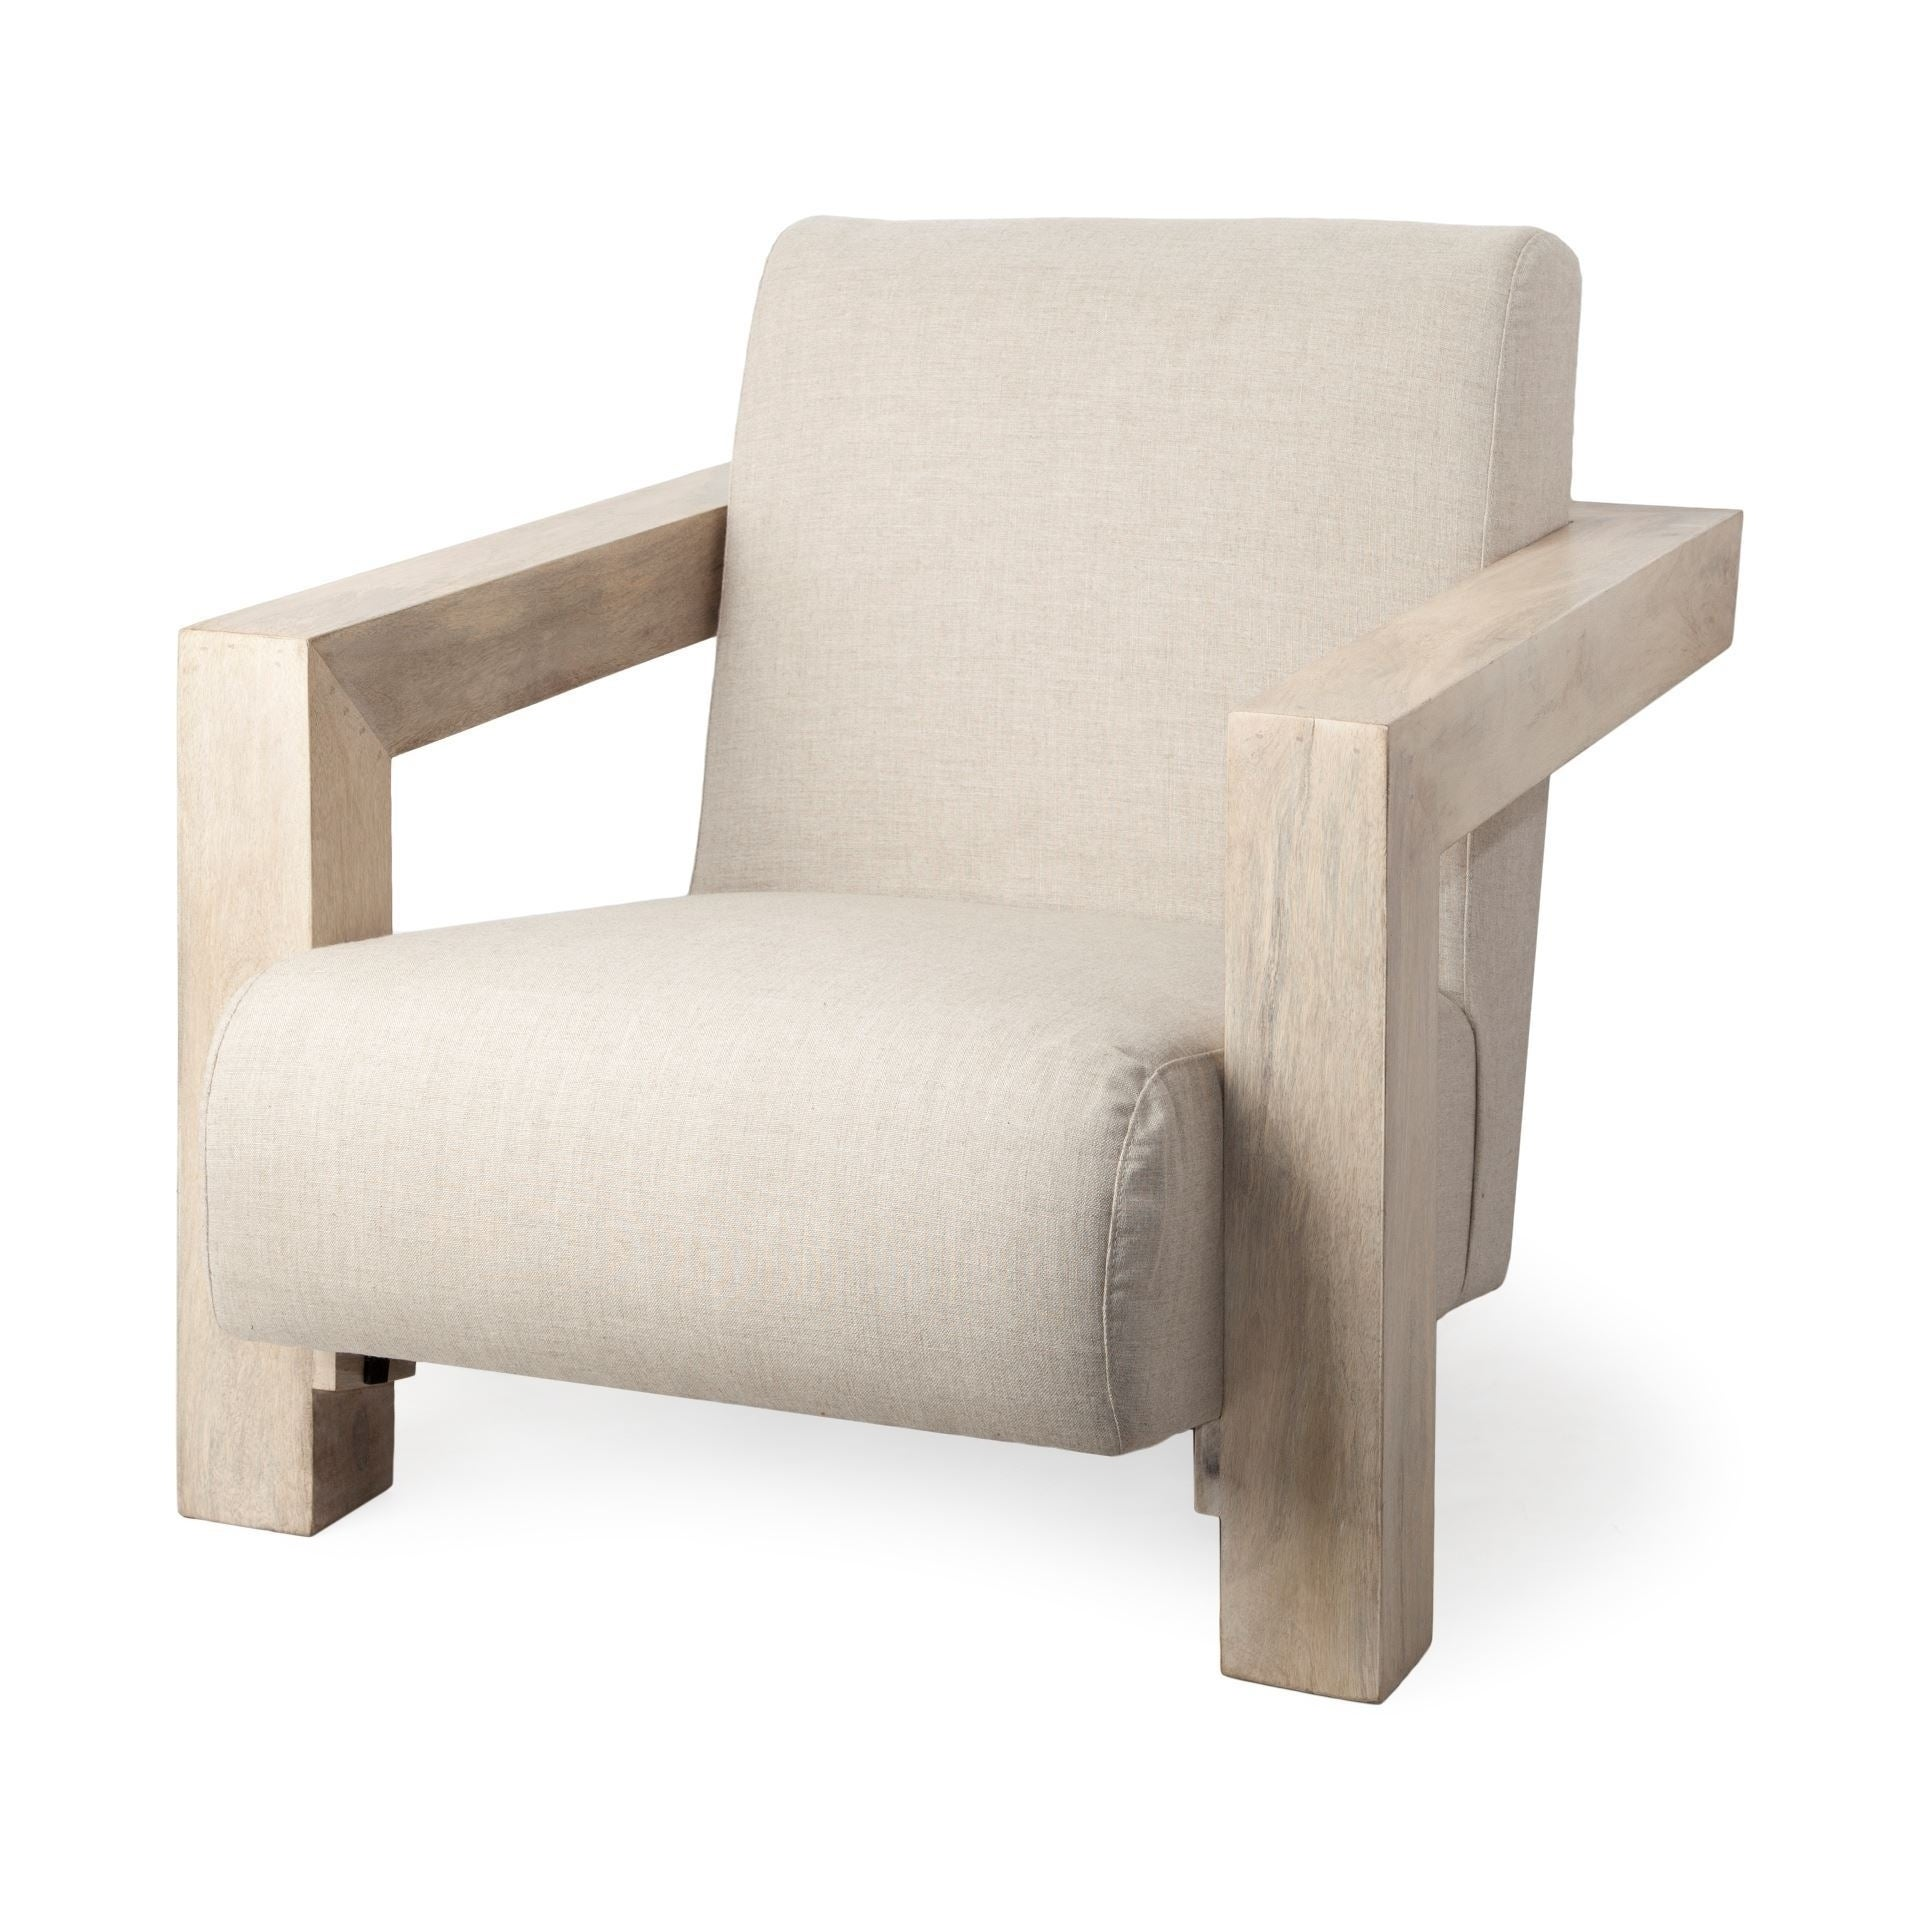 Mercana sovereign hardwood linen chair